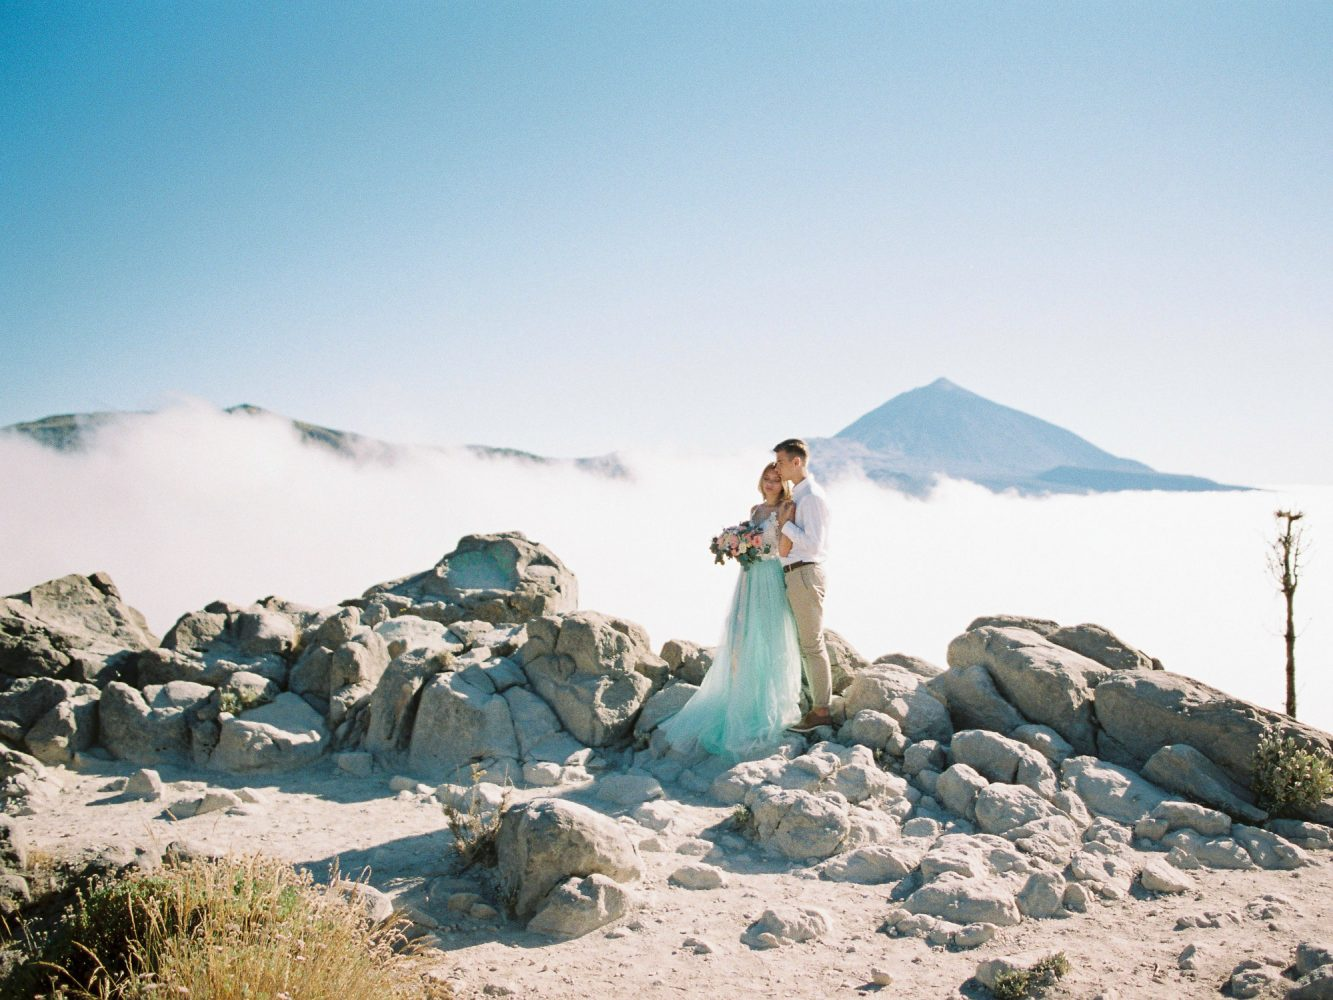 wedding-photographer-LillyVerhaegen-Tenerife-Italy-17